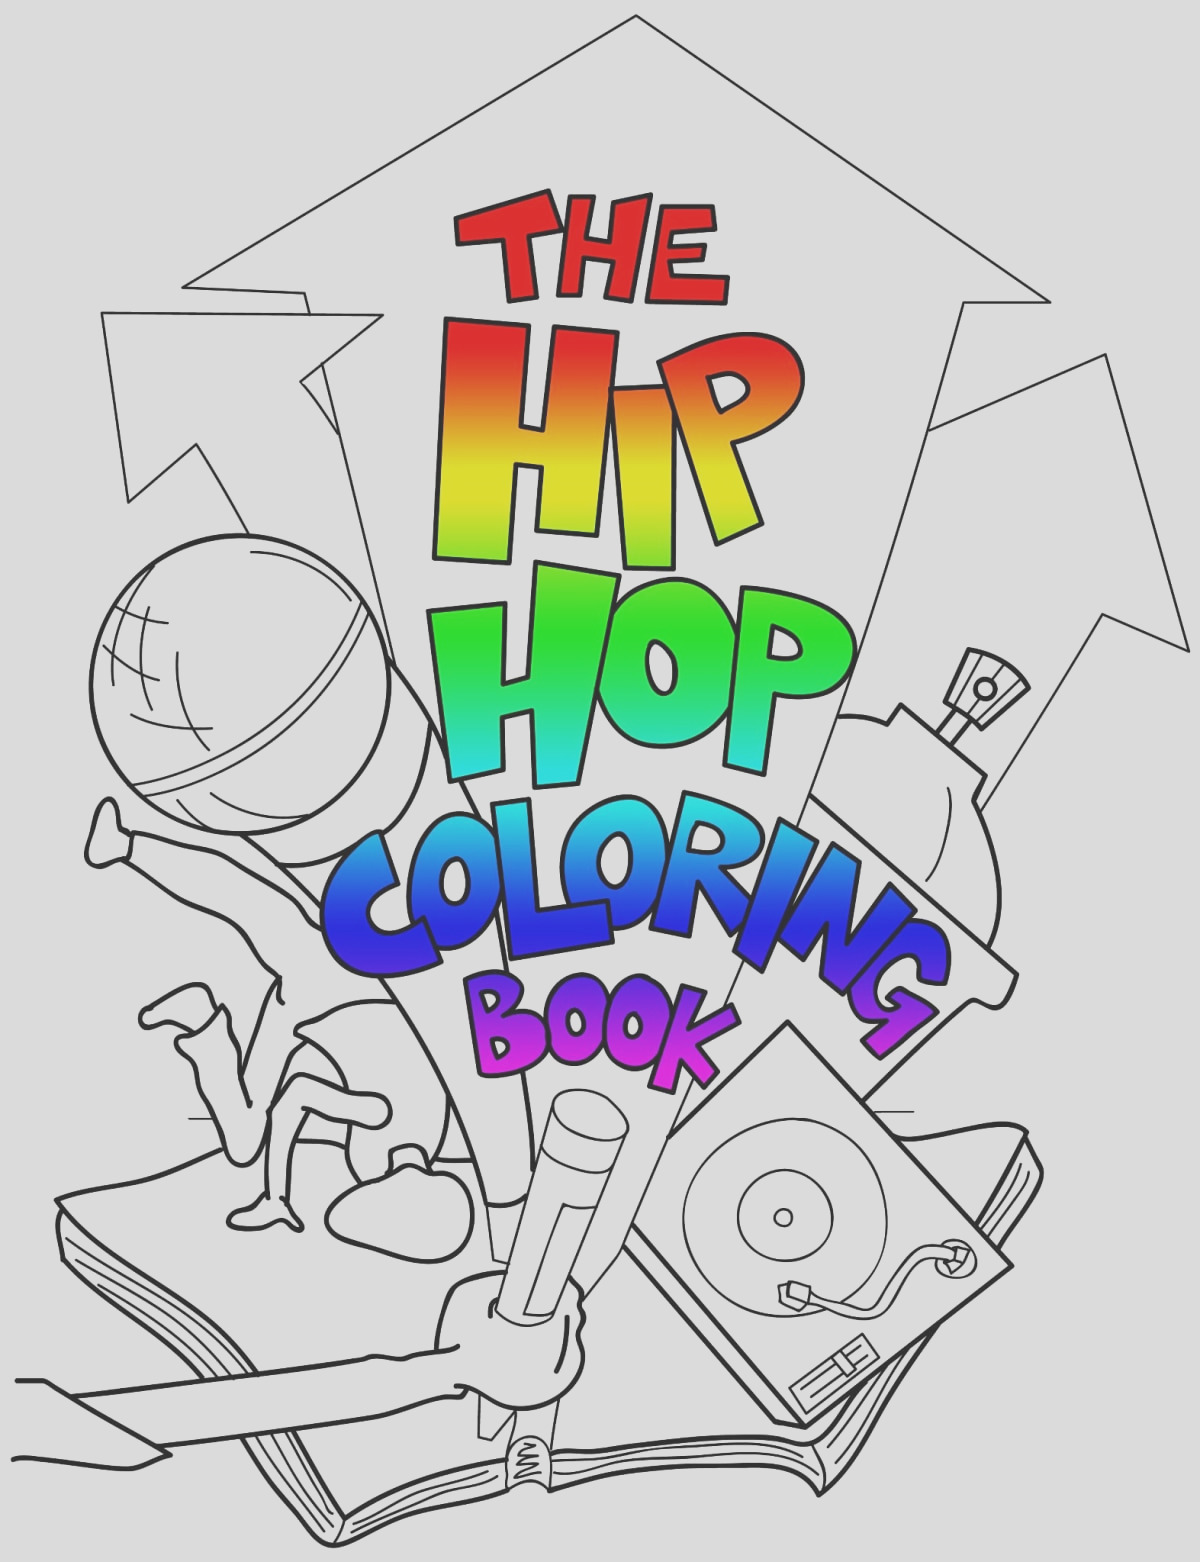 learn the history of rap with the hip hop coloring book